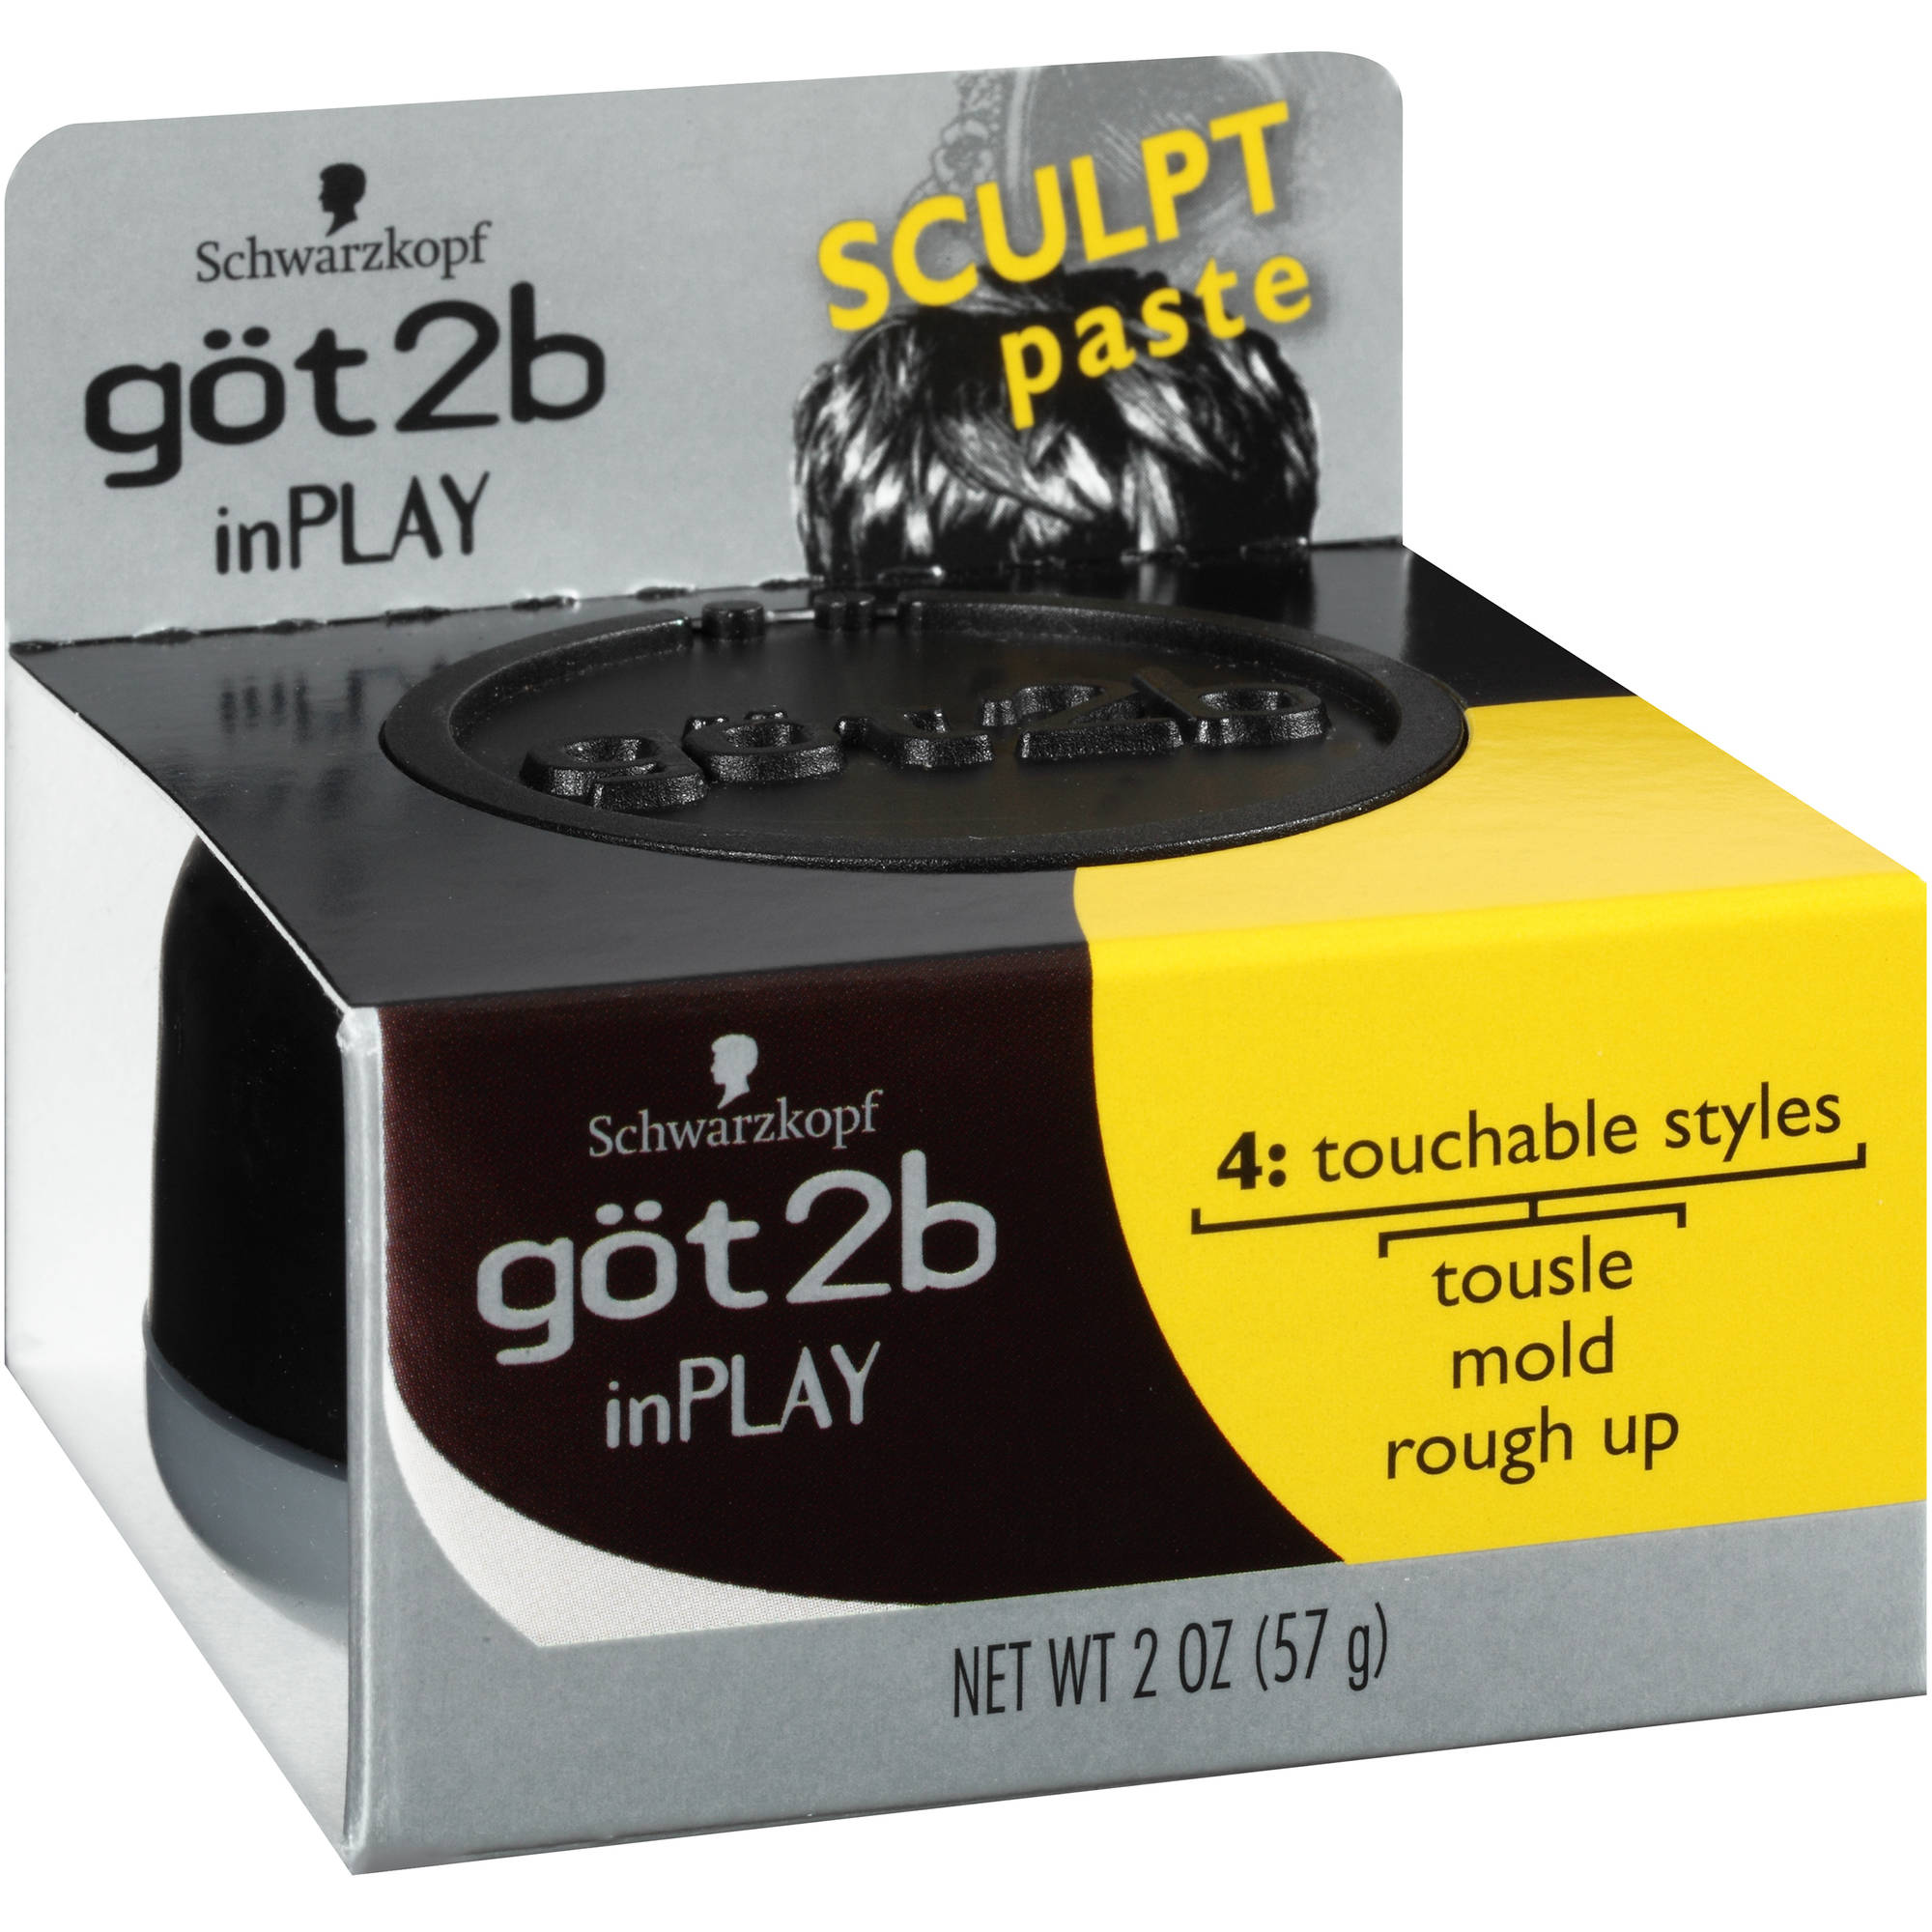 Schwarzkopf got2b inPlay Sculpt Paste, 2 oz